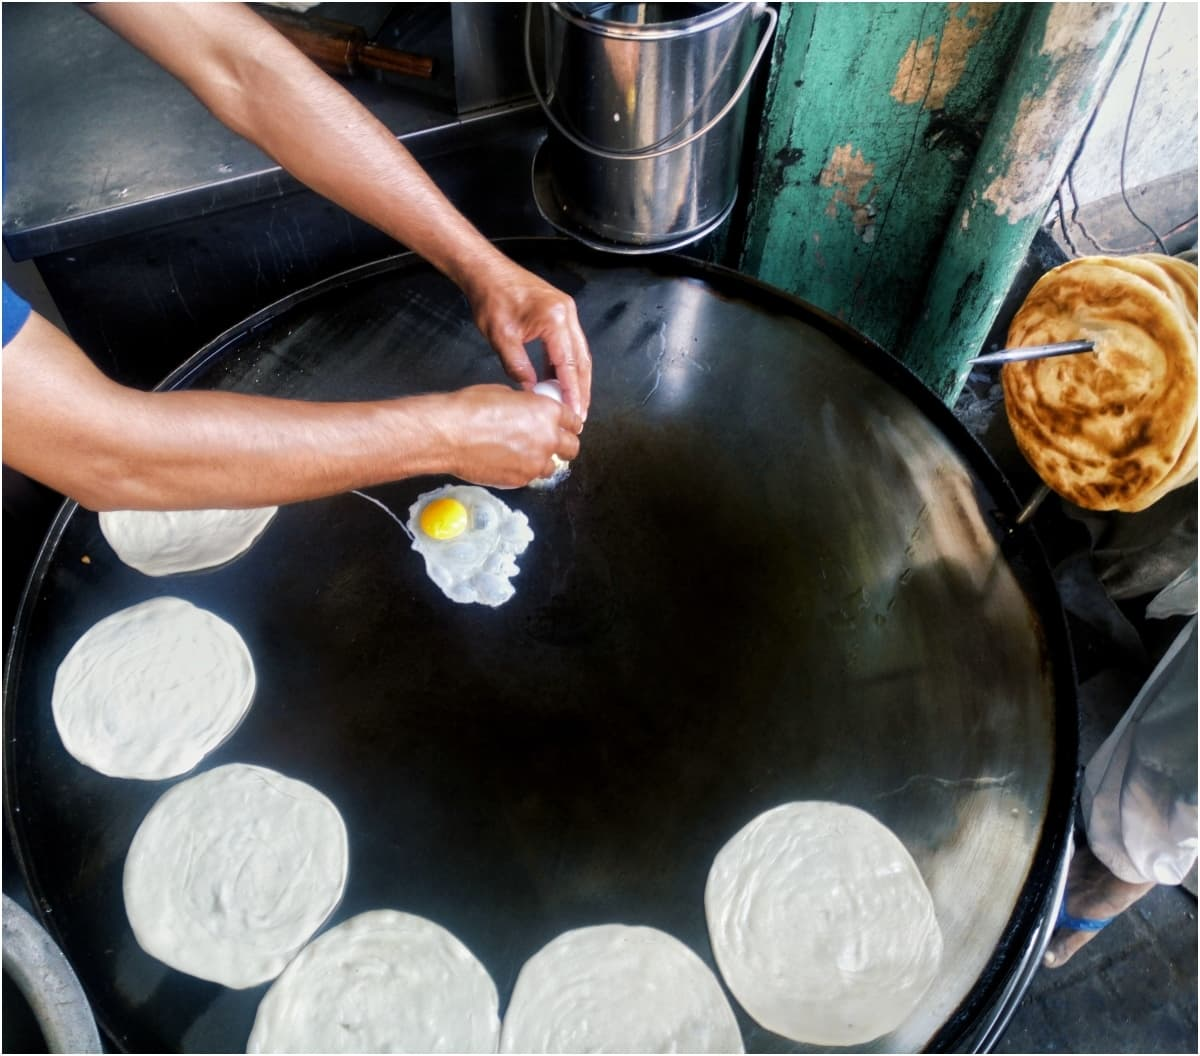 The egg and paratha in preparation